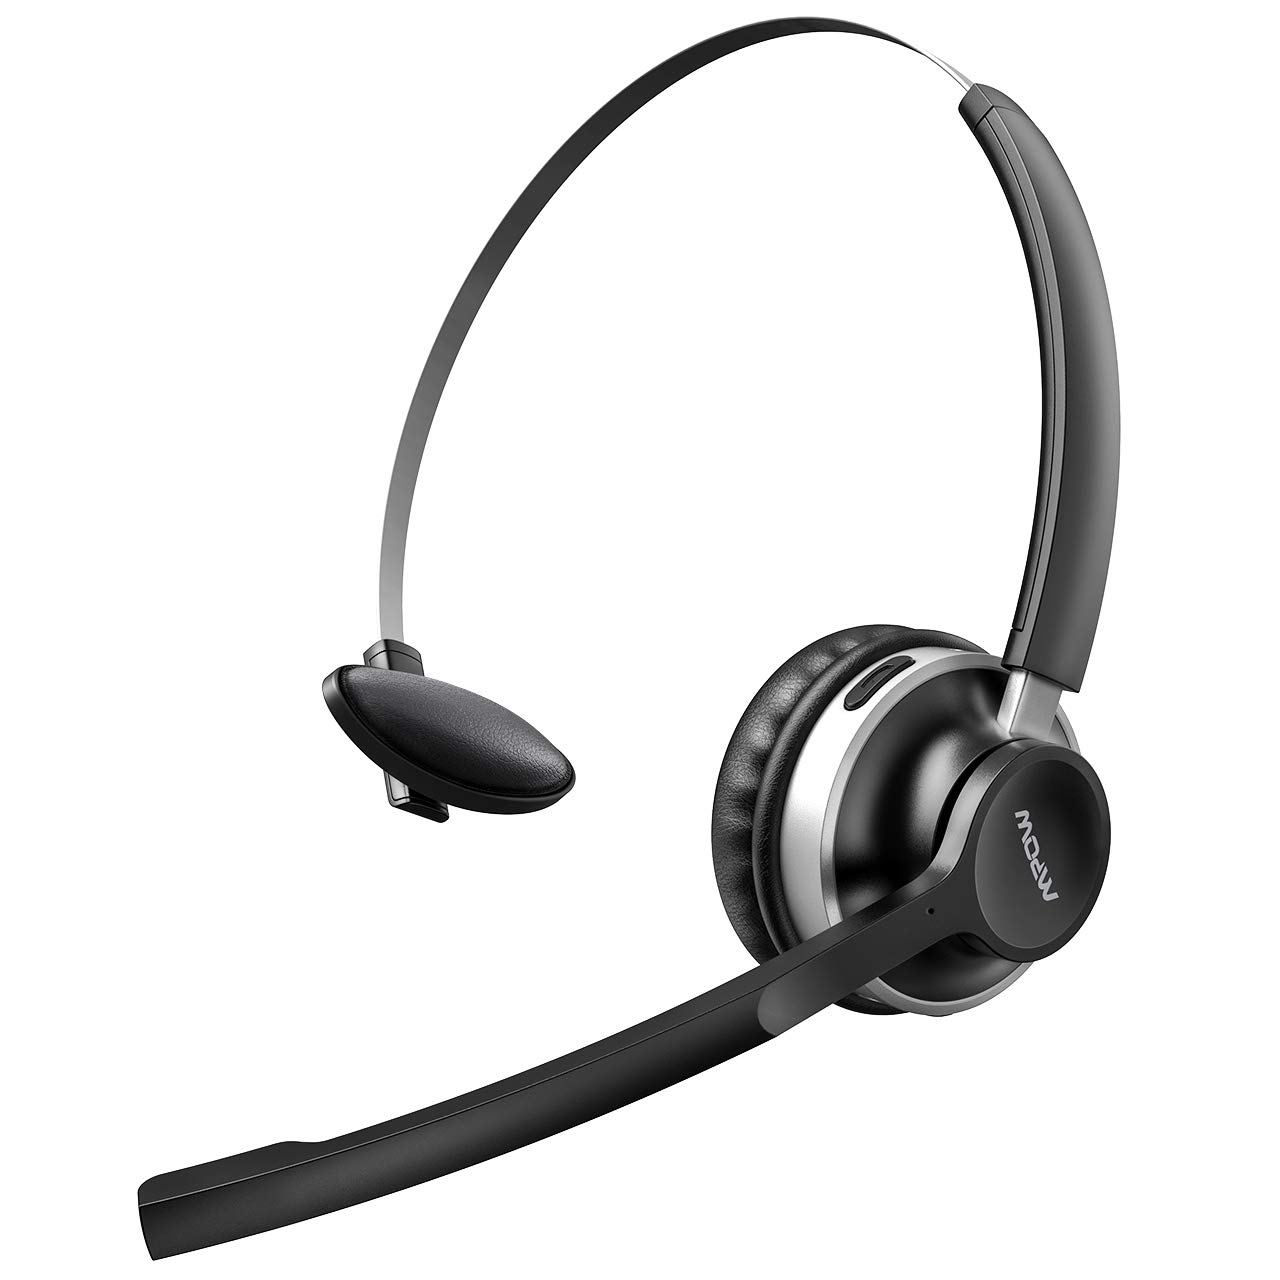 Mpow V5.0 Bluetooth Headset with Mic, Dual Noise Cancelling Microphone for Clear Call, All Day Comfort Truckers Headsets for Long Hual, Over The Head Bluetooth Earpiece for Cell Phone(Wired Option) by Mpow